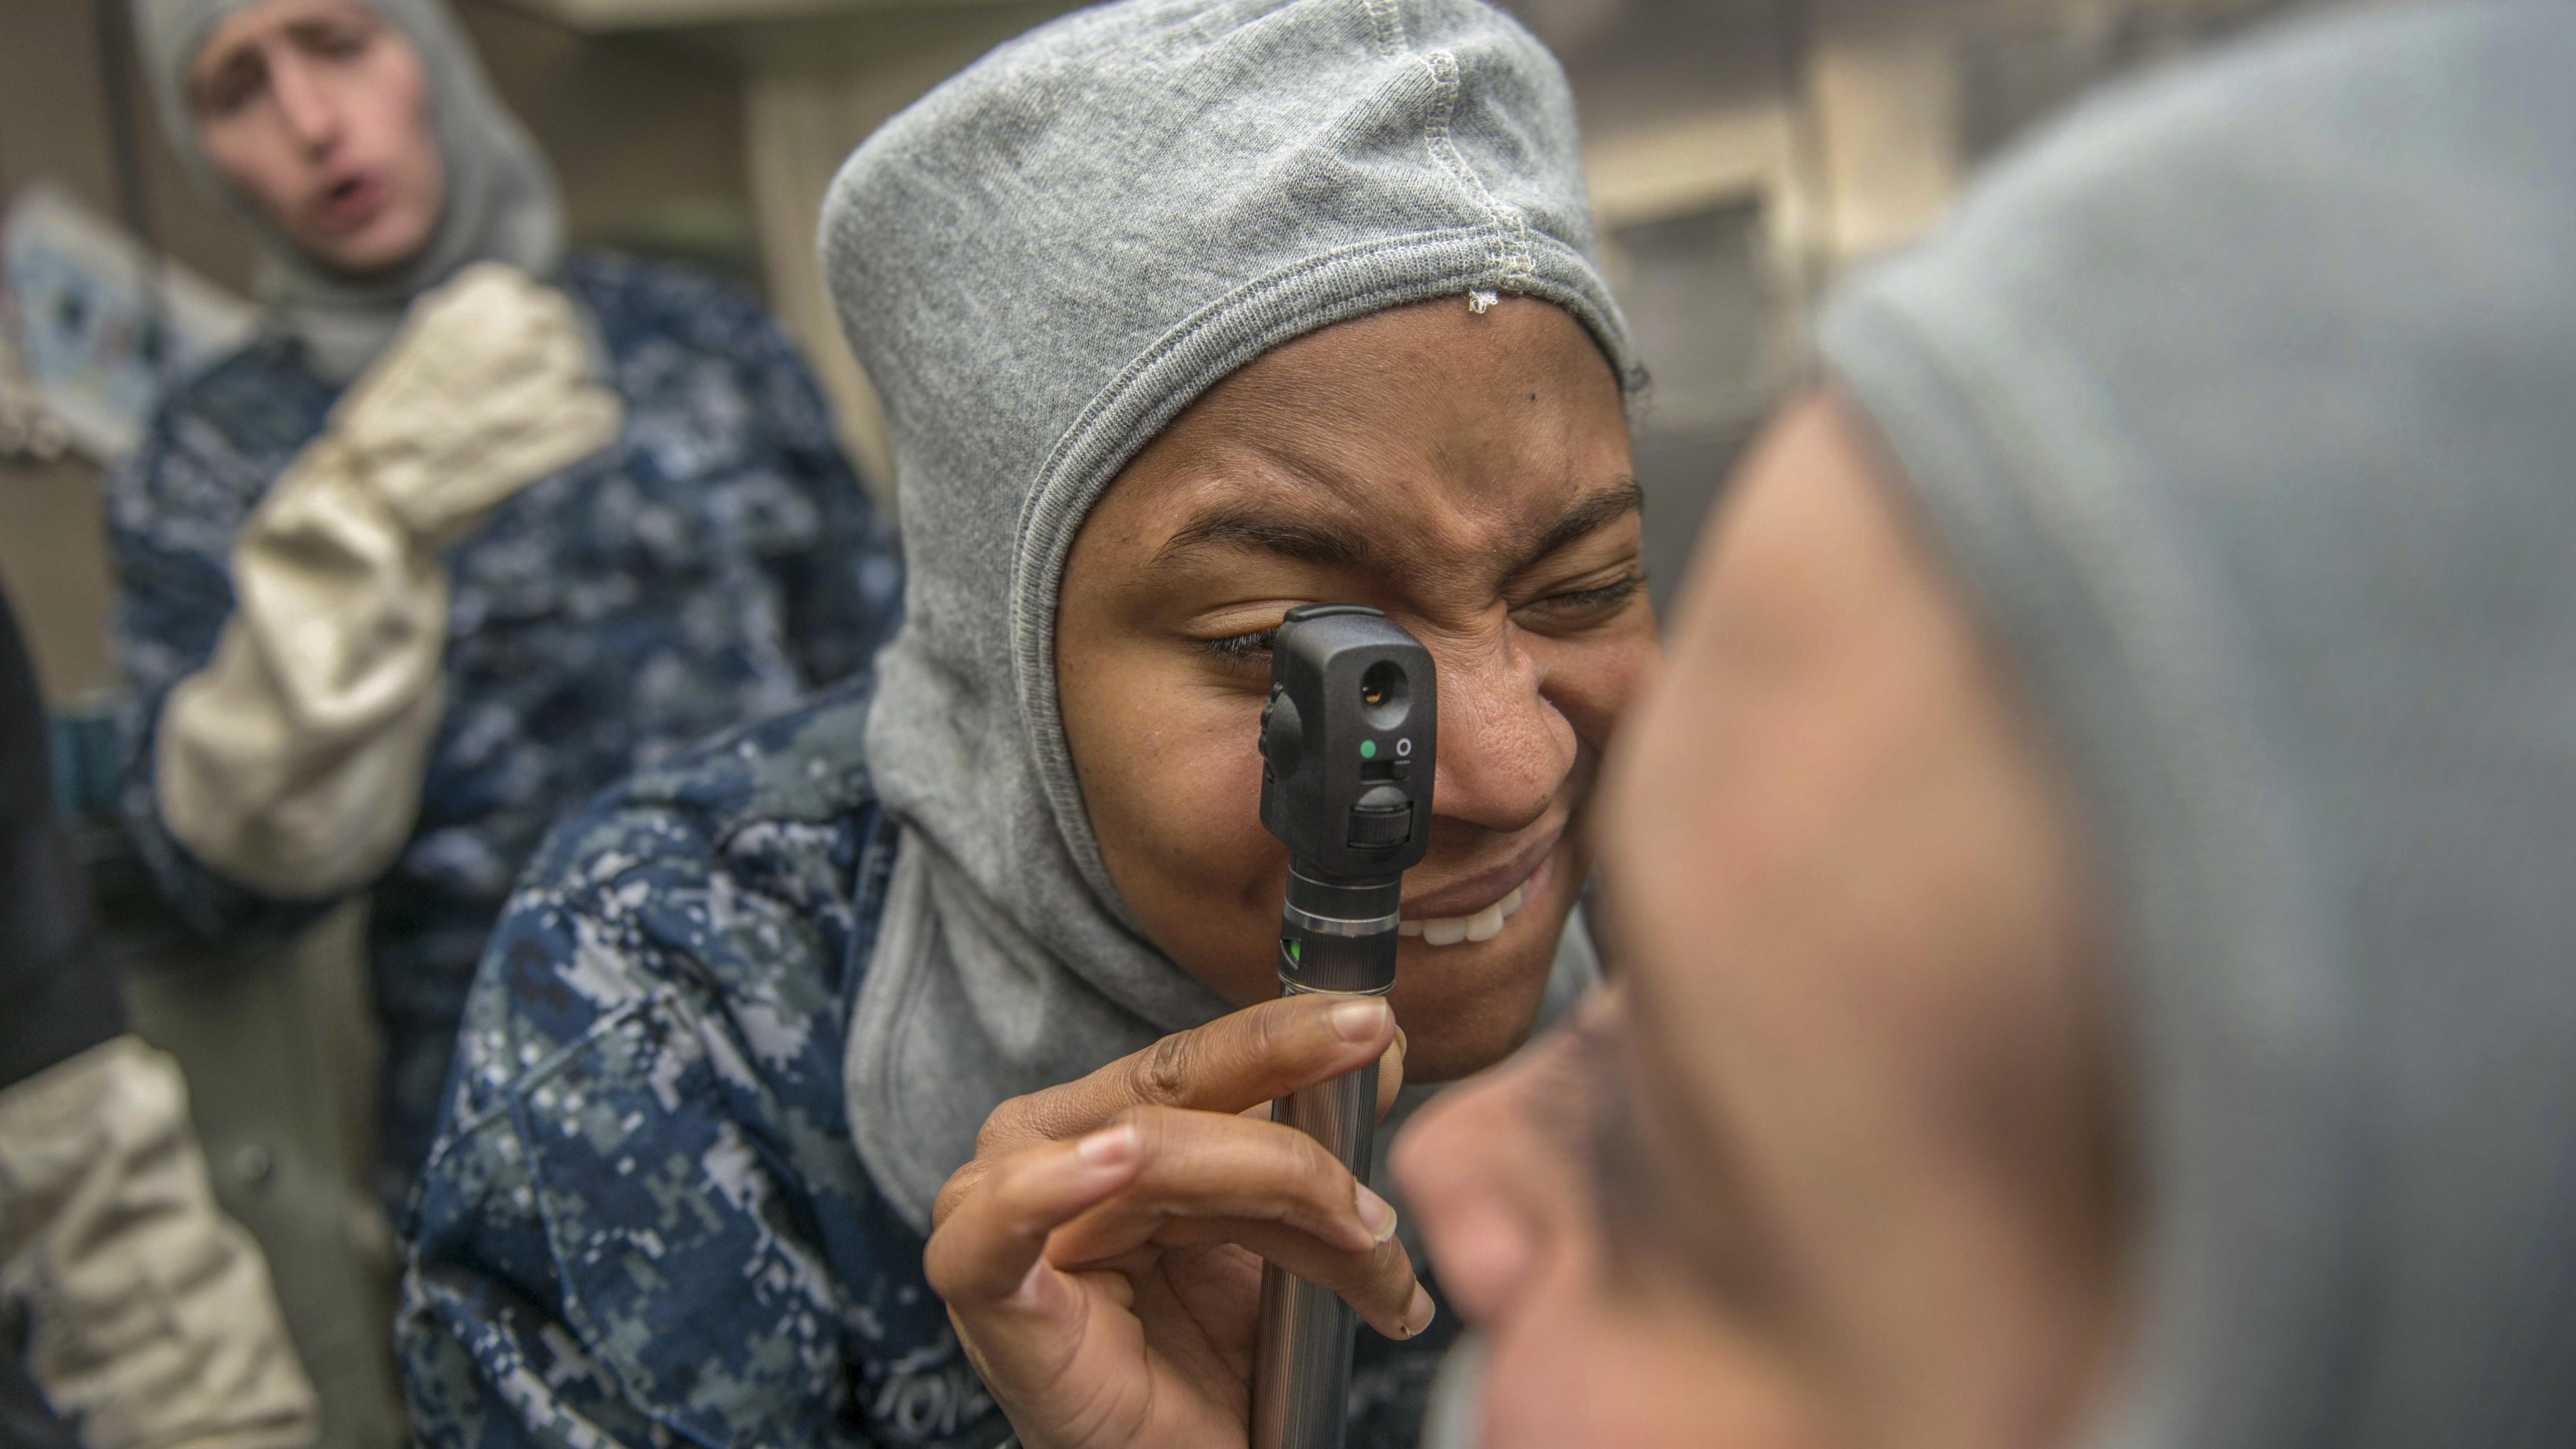 Navy Seaman Kiara Jones practices using an ophthalmoscope, a tool used to exam eyes, during a drill on the USS John C. Stennis in Bremerton, Wash., Nov. 29, 2017. The Stennis conducted routine training as it prepared for its next deployment. Navy photo by Jonathan Jiang